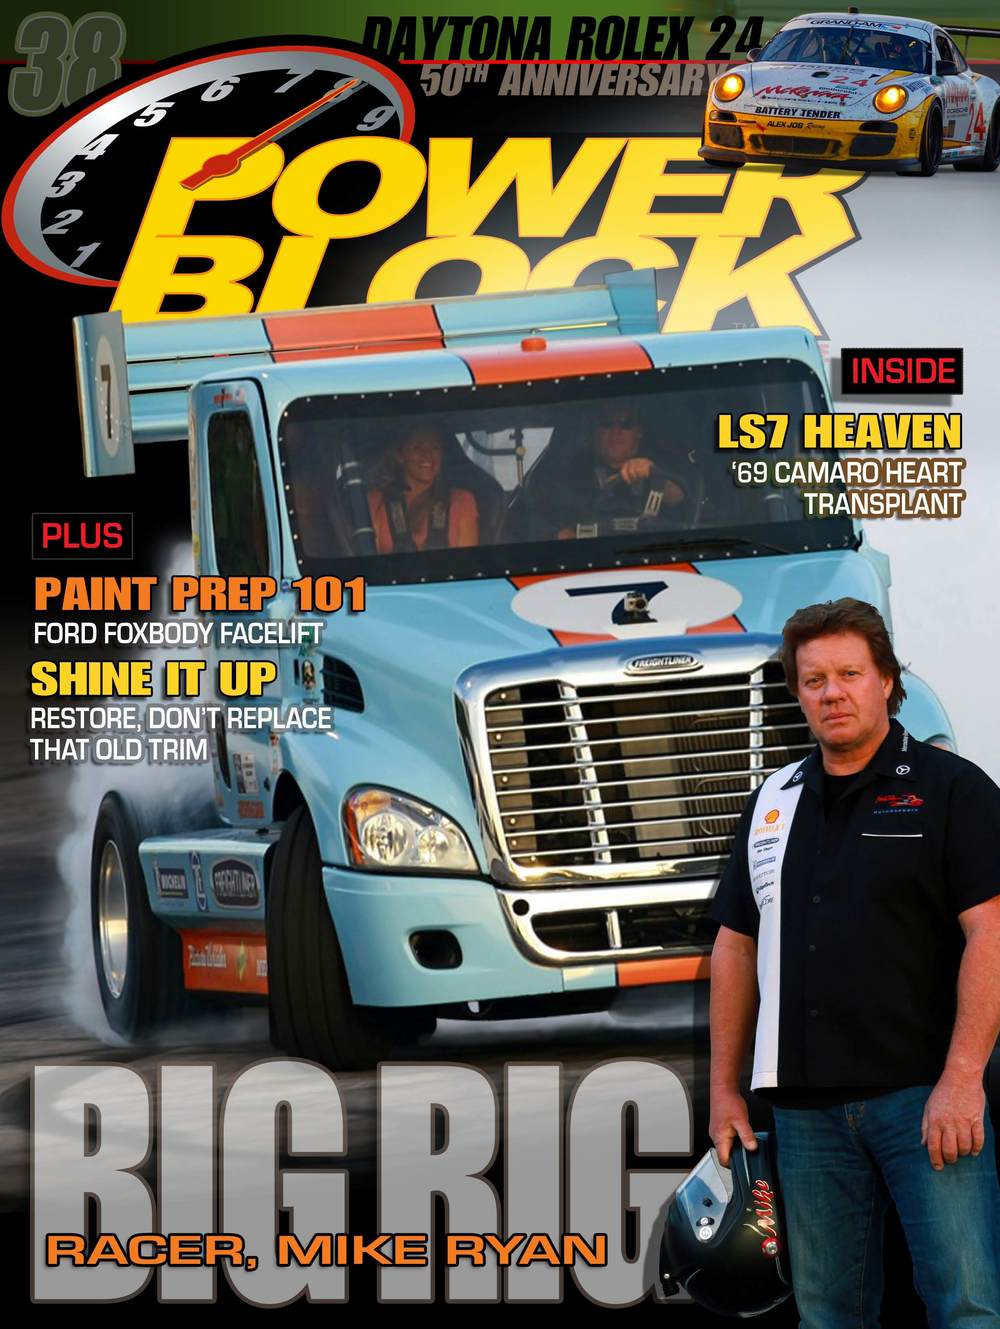 powerblockmagazine_issue38_rolex24_Page_01.jpg